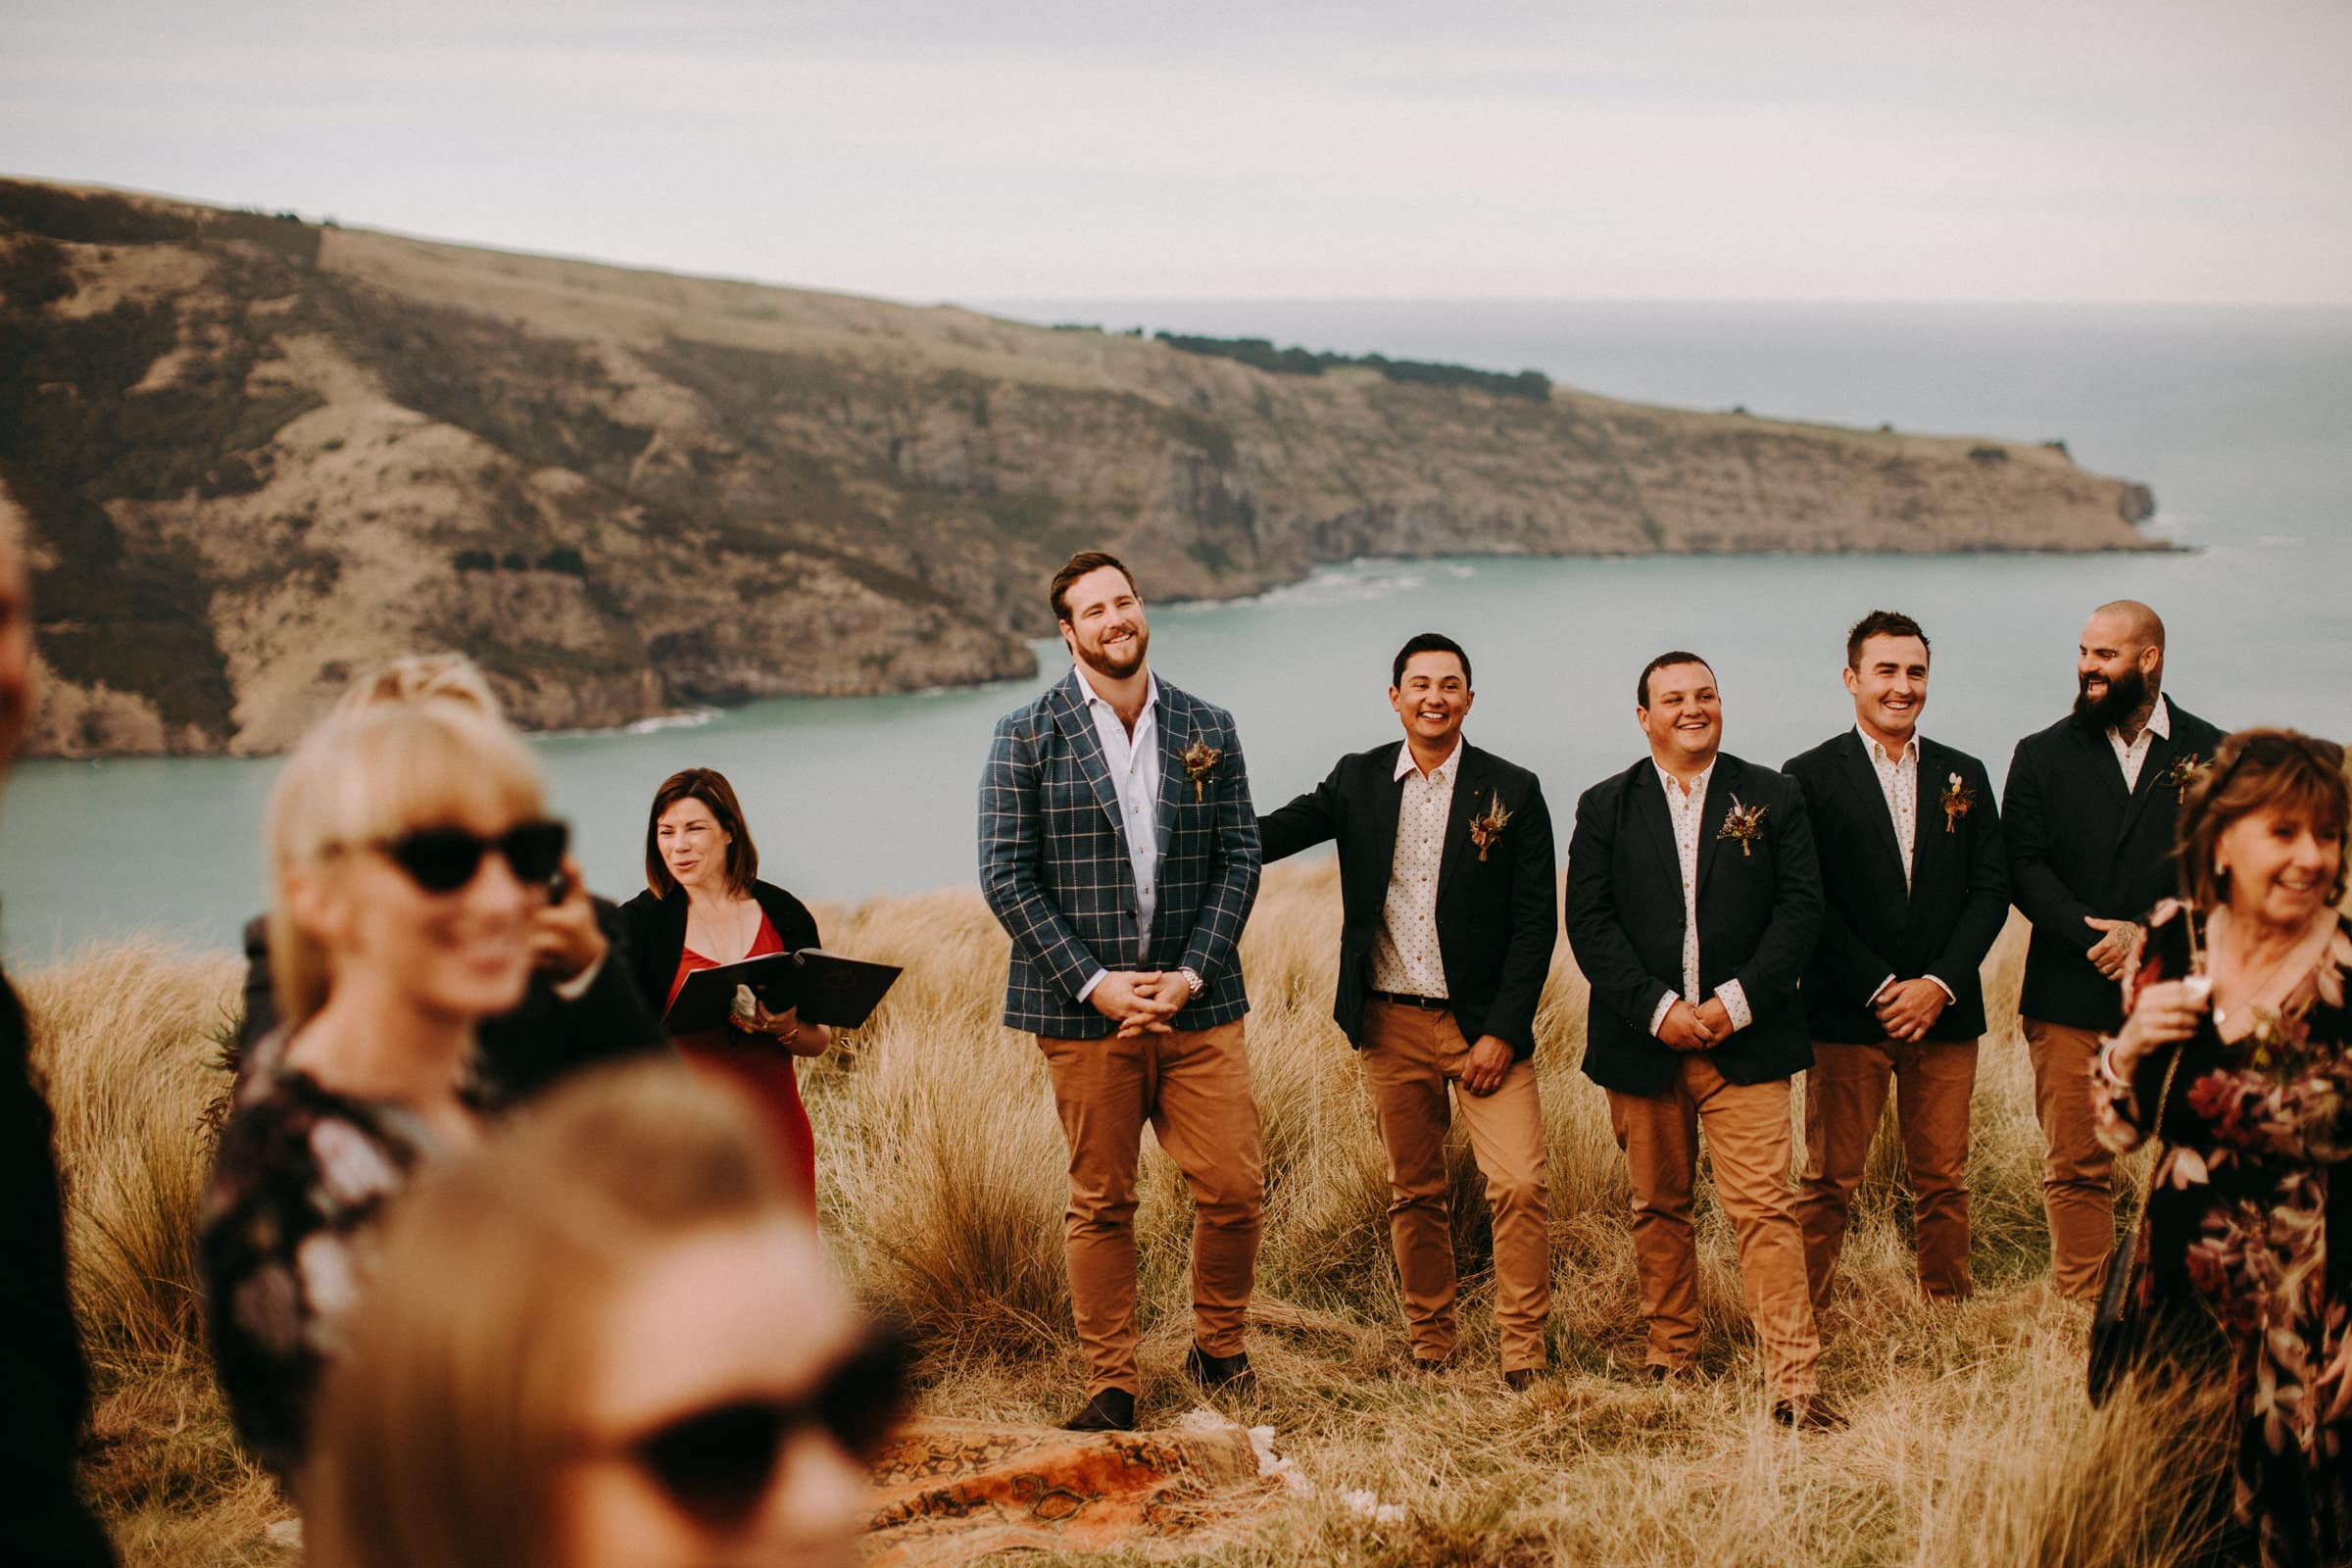 A groom, his groomsmen and other wedding guests are standing in a meadow and looking towards the bride.